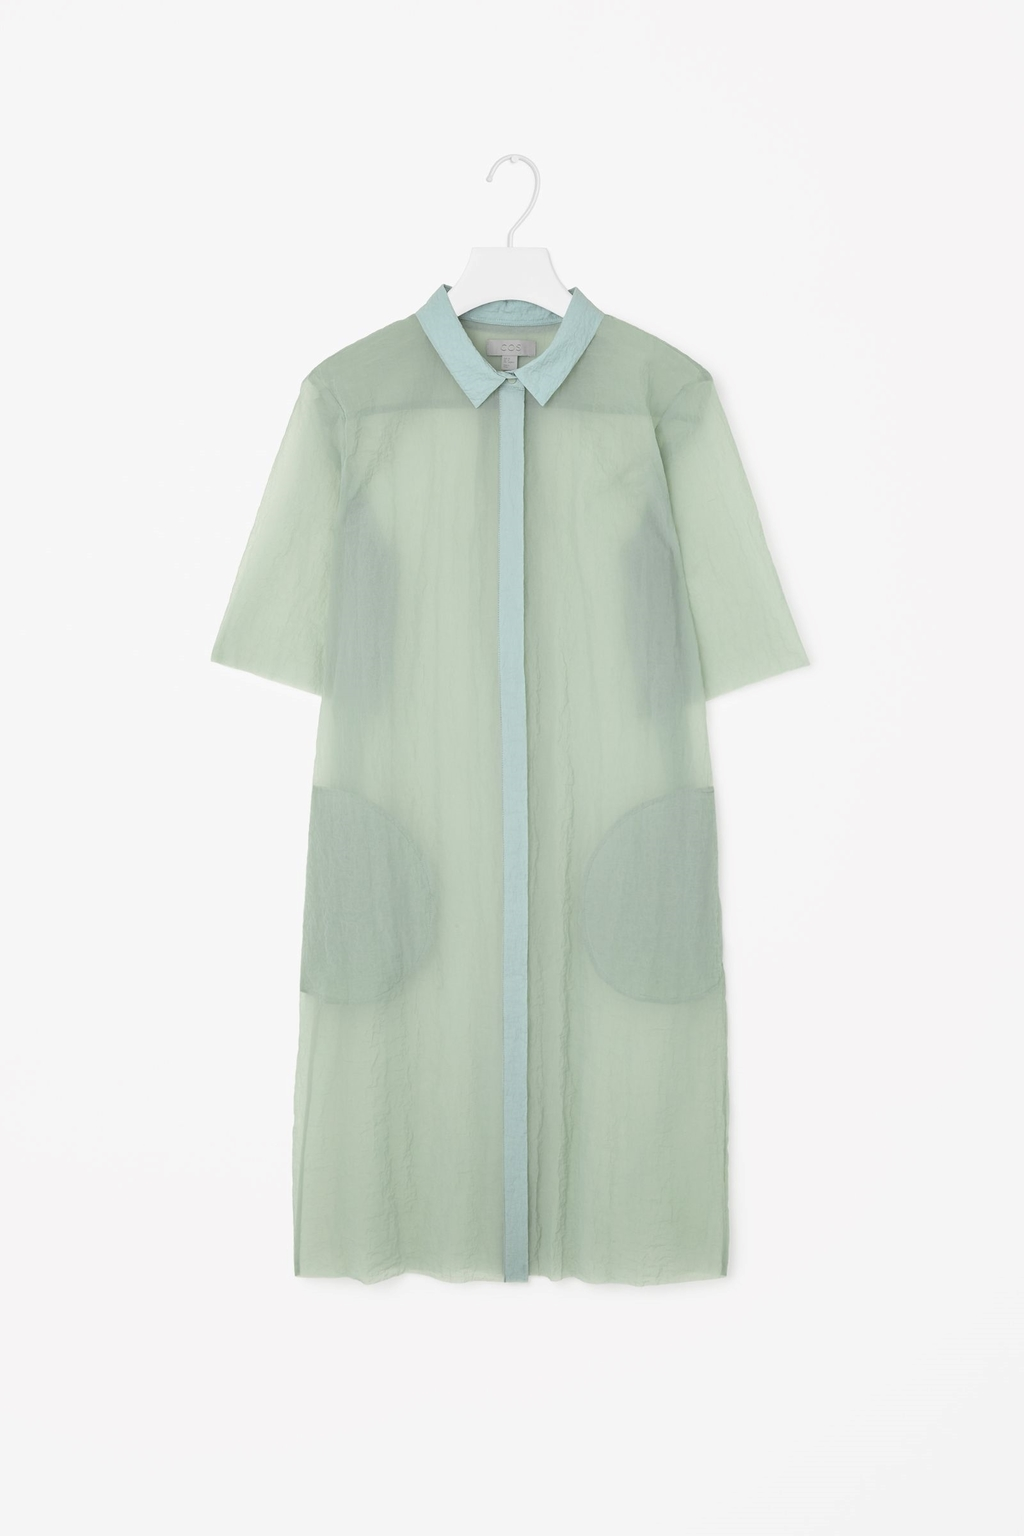 Translucent Shirt Dress - style: shirt; length: mid thigh; neckline: shirt collar/peter pan/zip with opening; pattern: plain; secondary colour: pale blue; predominant colour: pistachio; occasions: casual, creative work; fit: straight cut; fibres: polyester/polyamide - 100%; sleeve length: short sleeve; sleeve style: standard; texture group: sheer fabrics/chiffon/organza etc.; season: s/s 2015